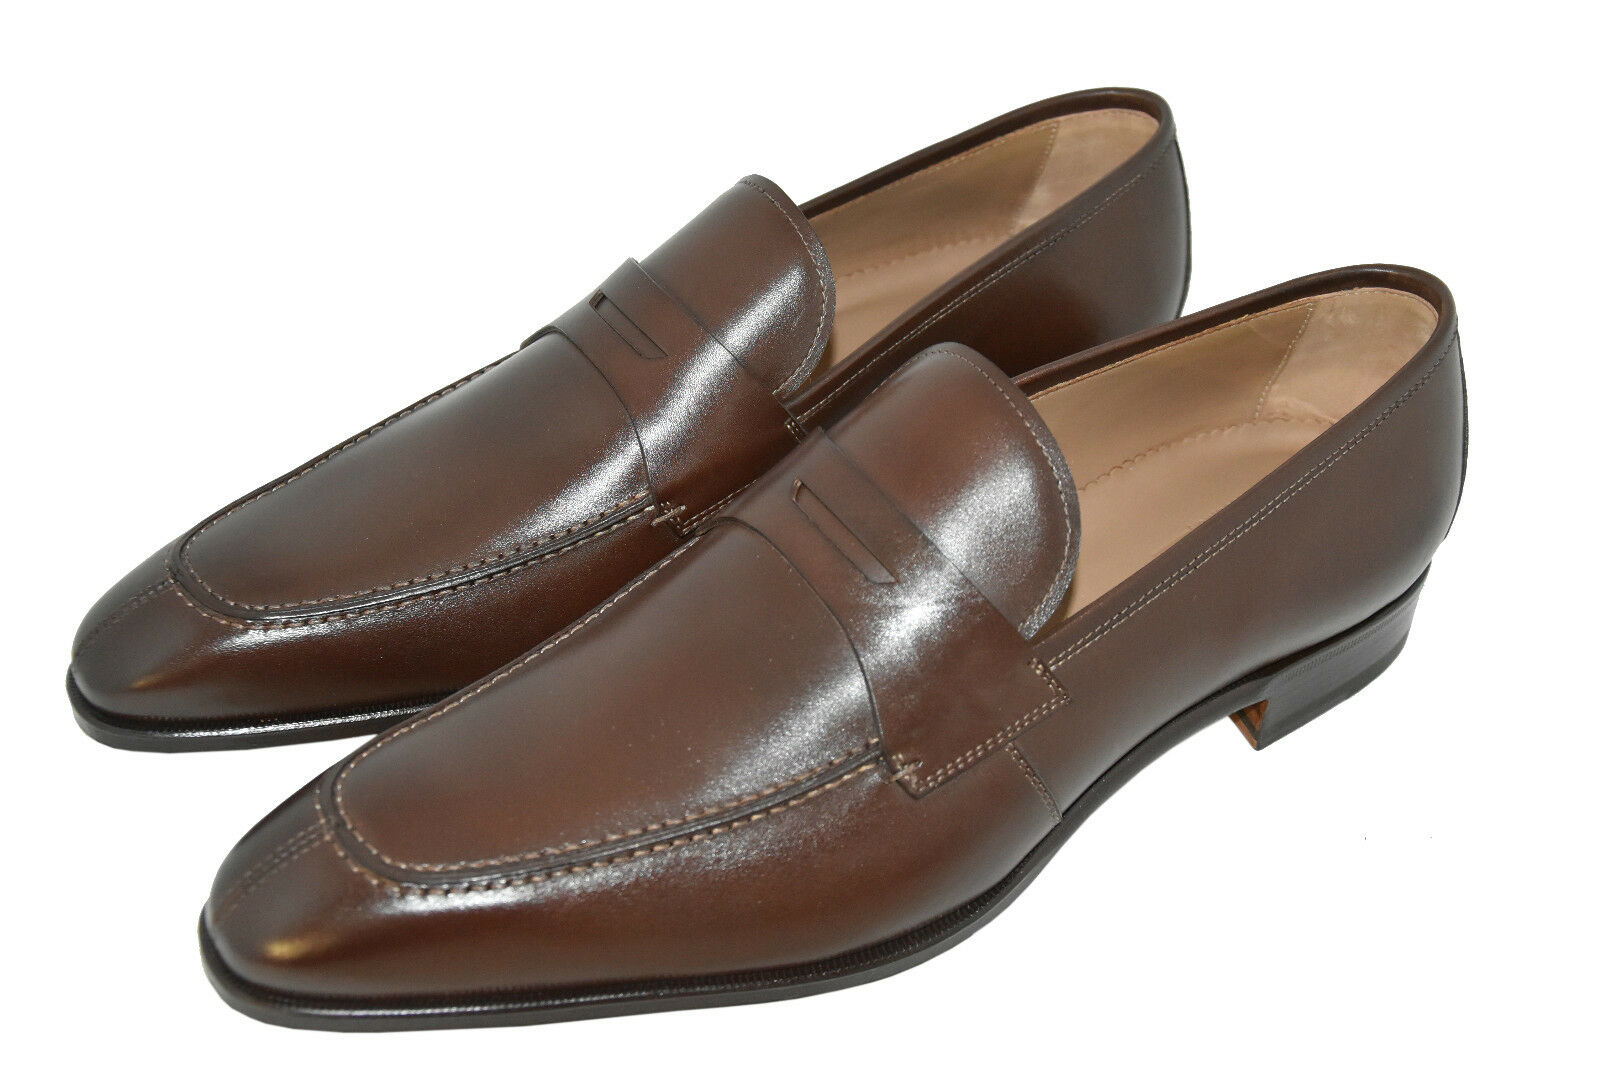 MAN-12EU-13US-PENNY LOAFER-CALF DARK BROWN-LEATHER SOLE- SMALL DEFECTED ITEM